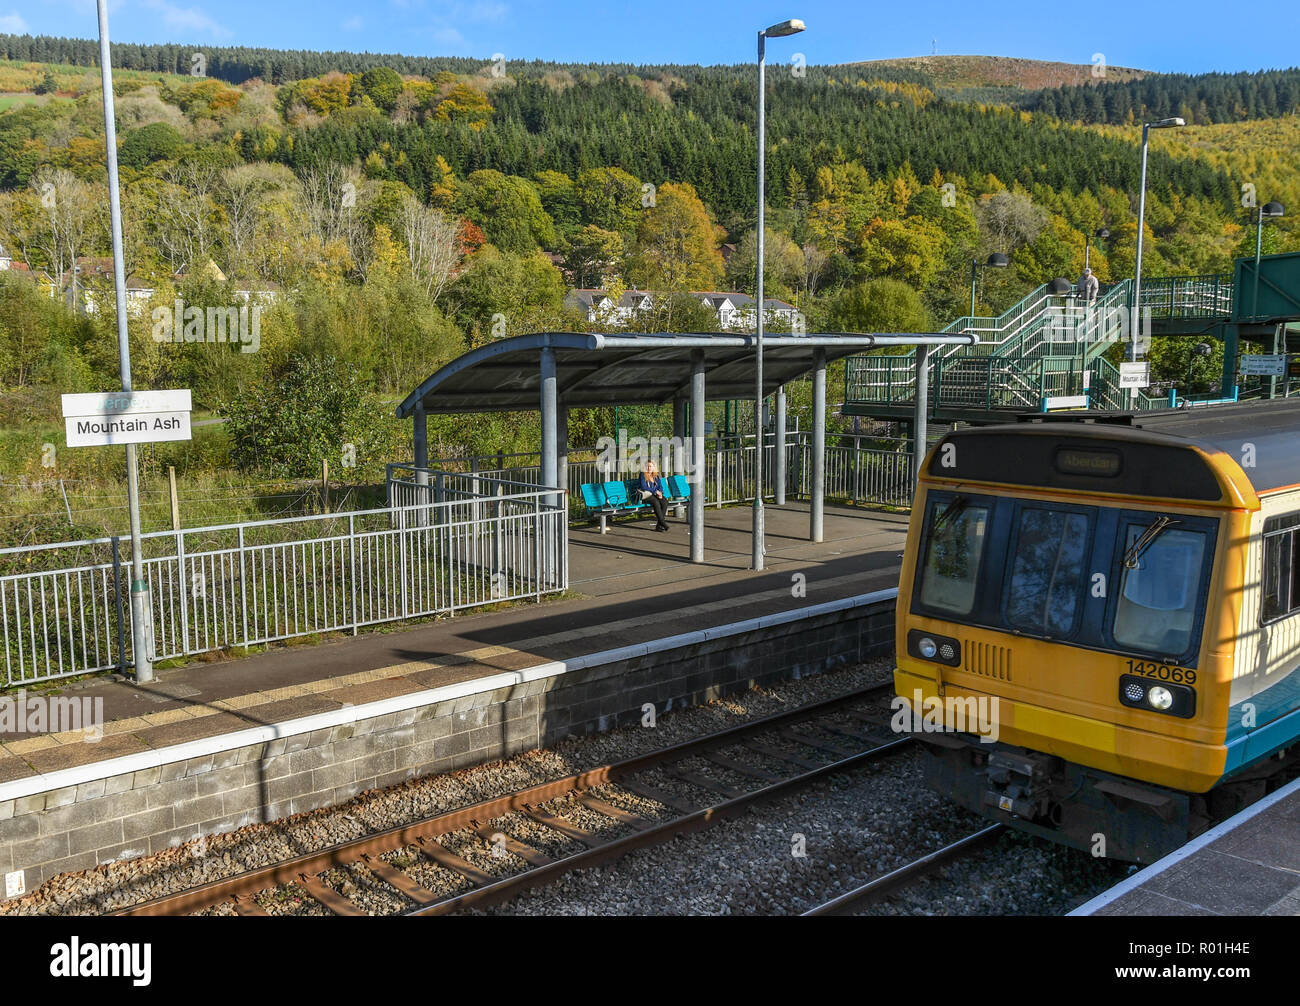 MOUNTAIN ASH, WALES - OCTOBER 2018: Diesel commuter train at the platform on Mountain Ash railway station. - Stock Image